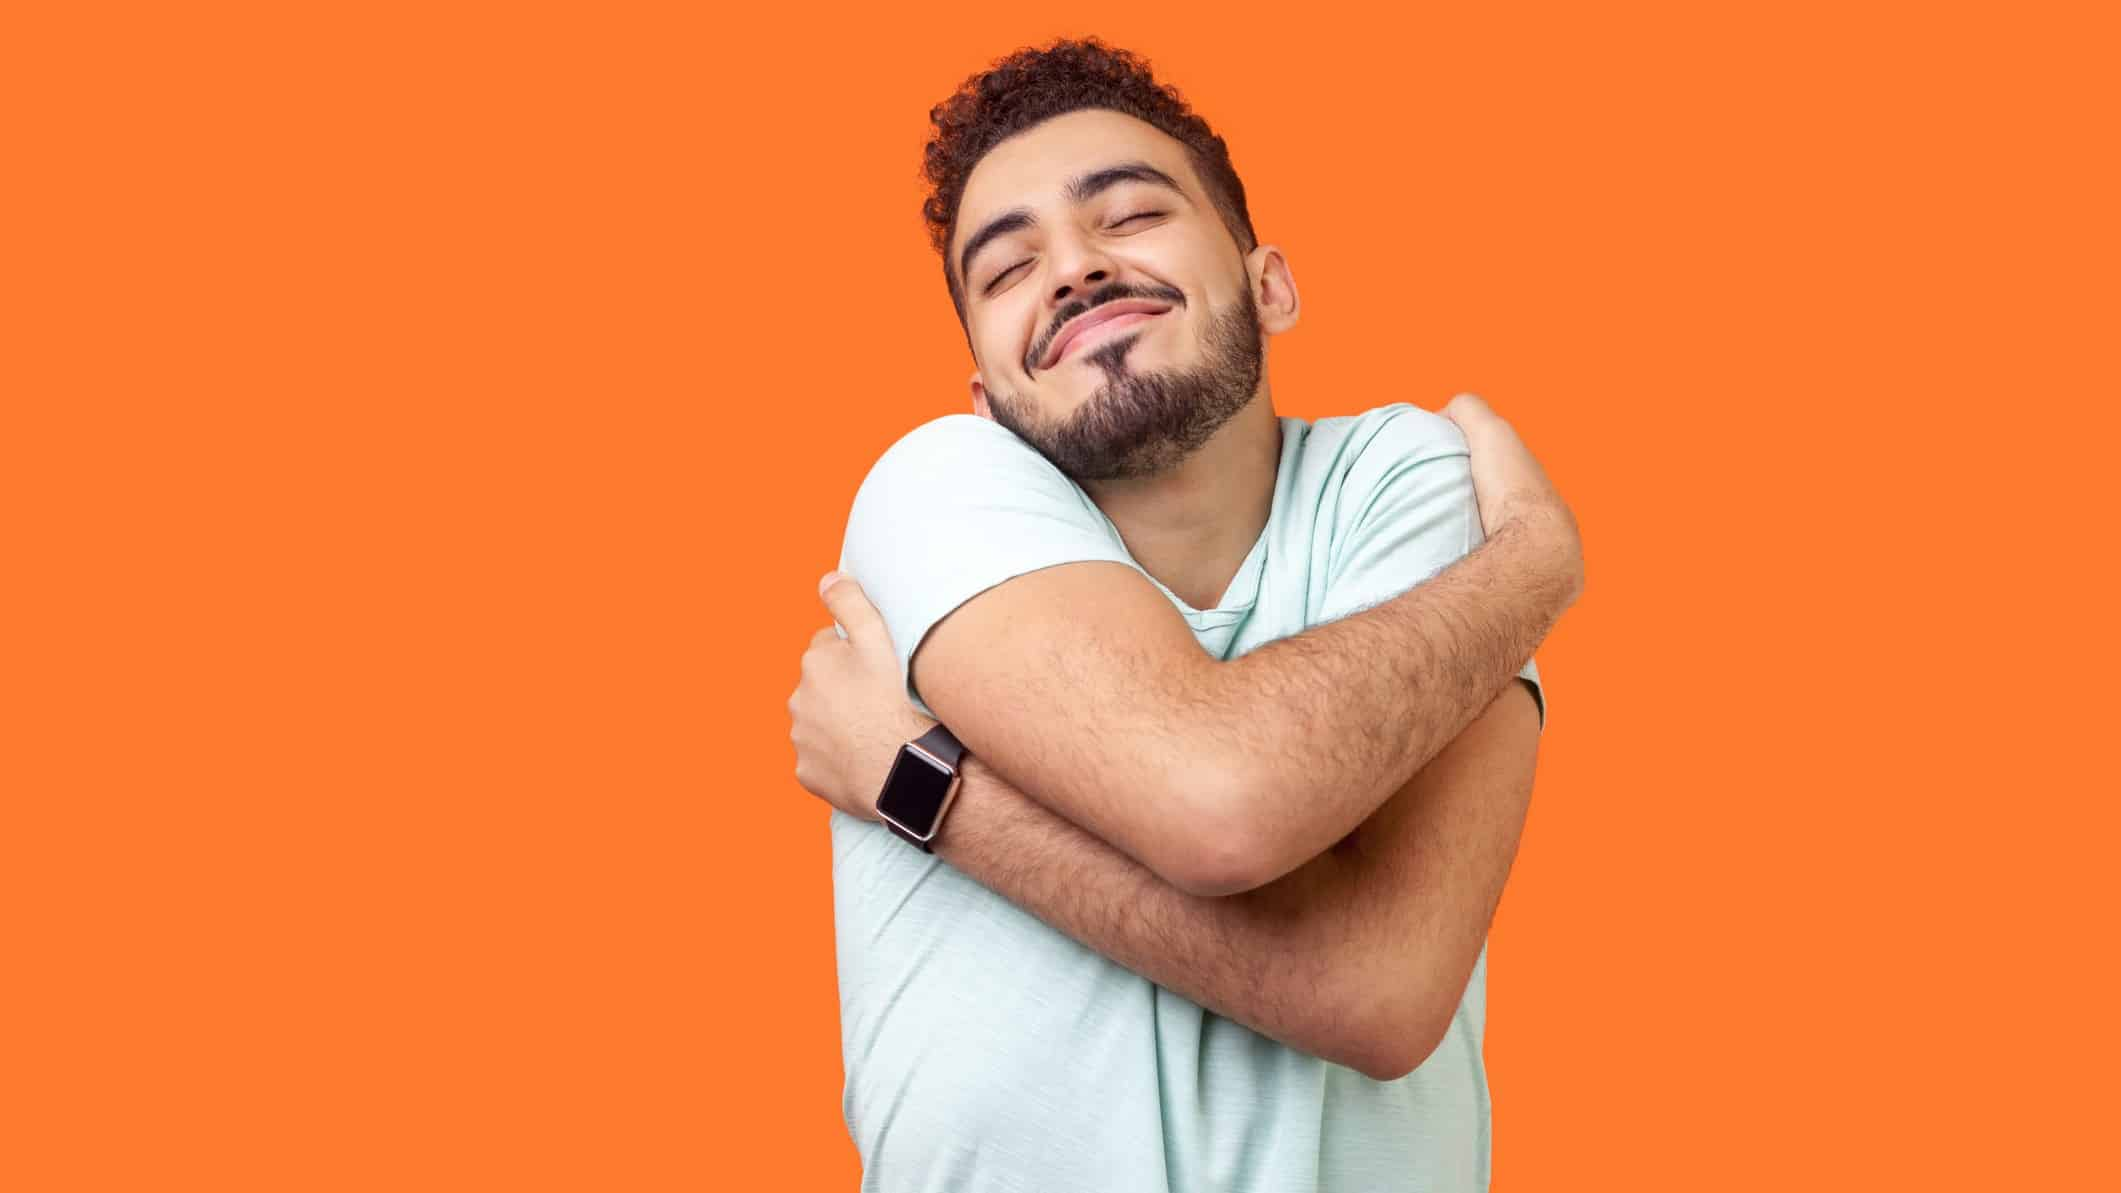 asx shares to buy and hold represented by man happily hugging himself